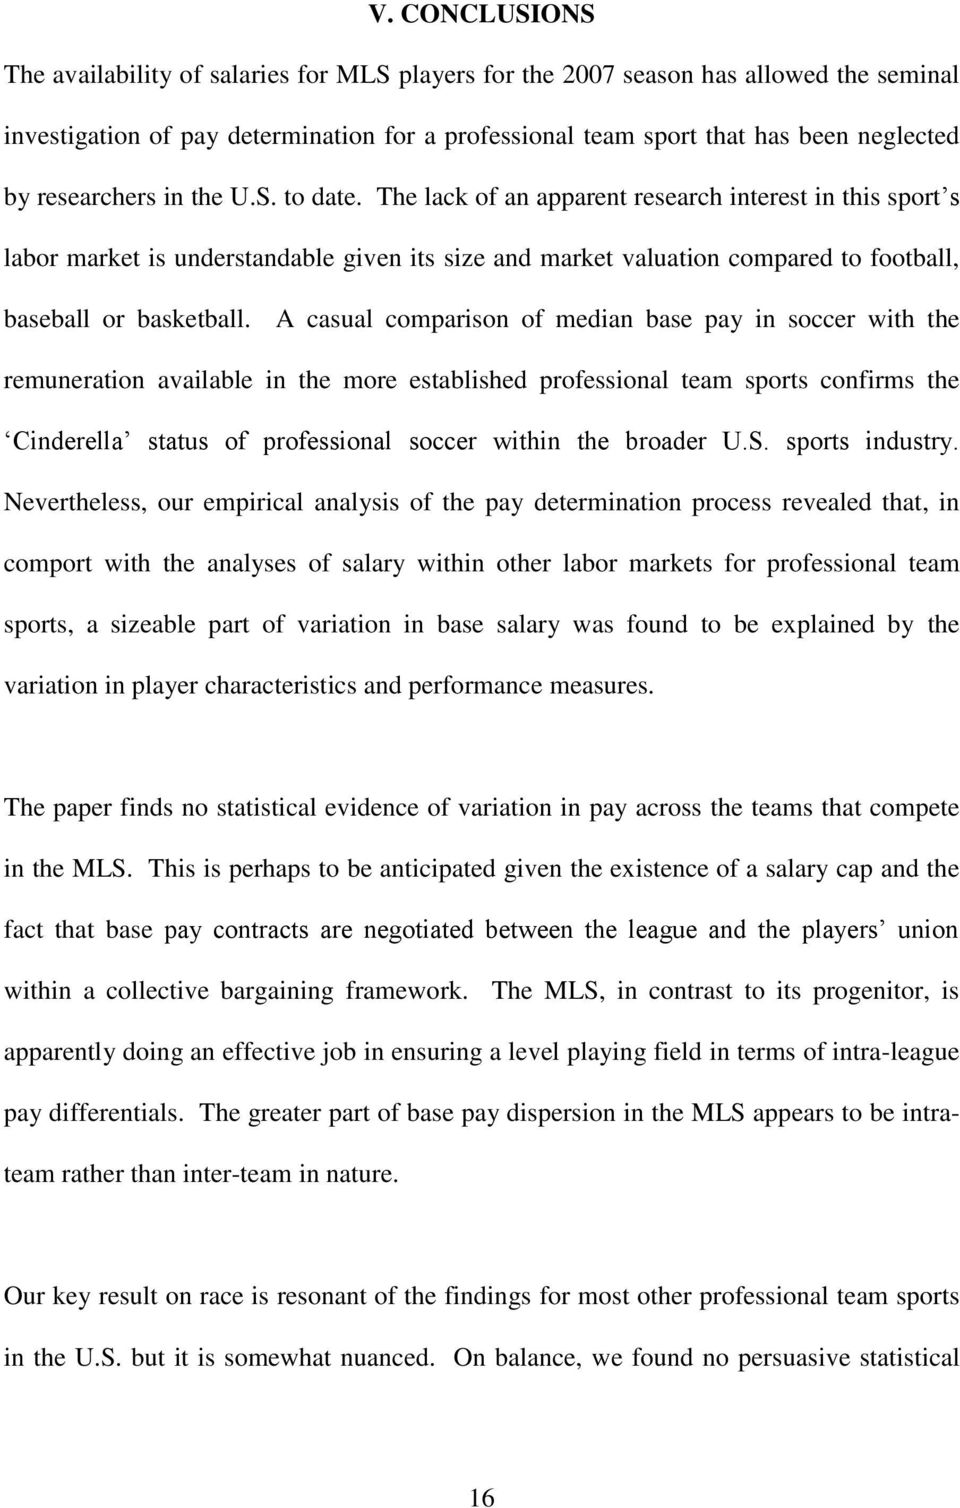 The lack of an apparent research interest in this sport s labor market is understandable given its size and market valuation compared to football, baseball or basketball.